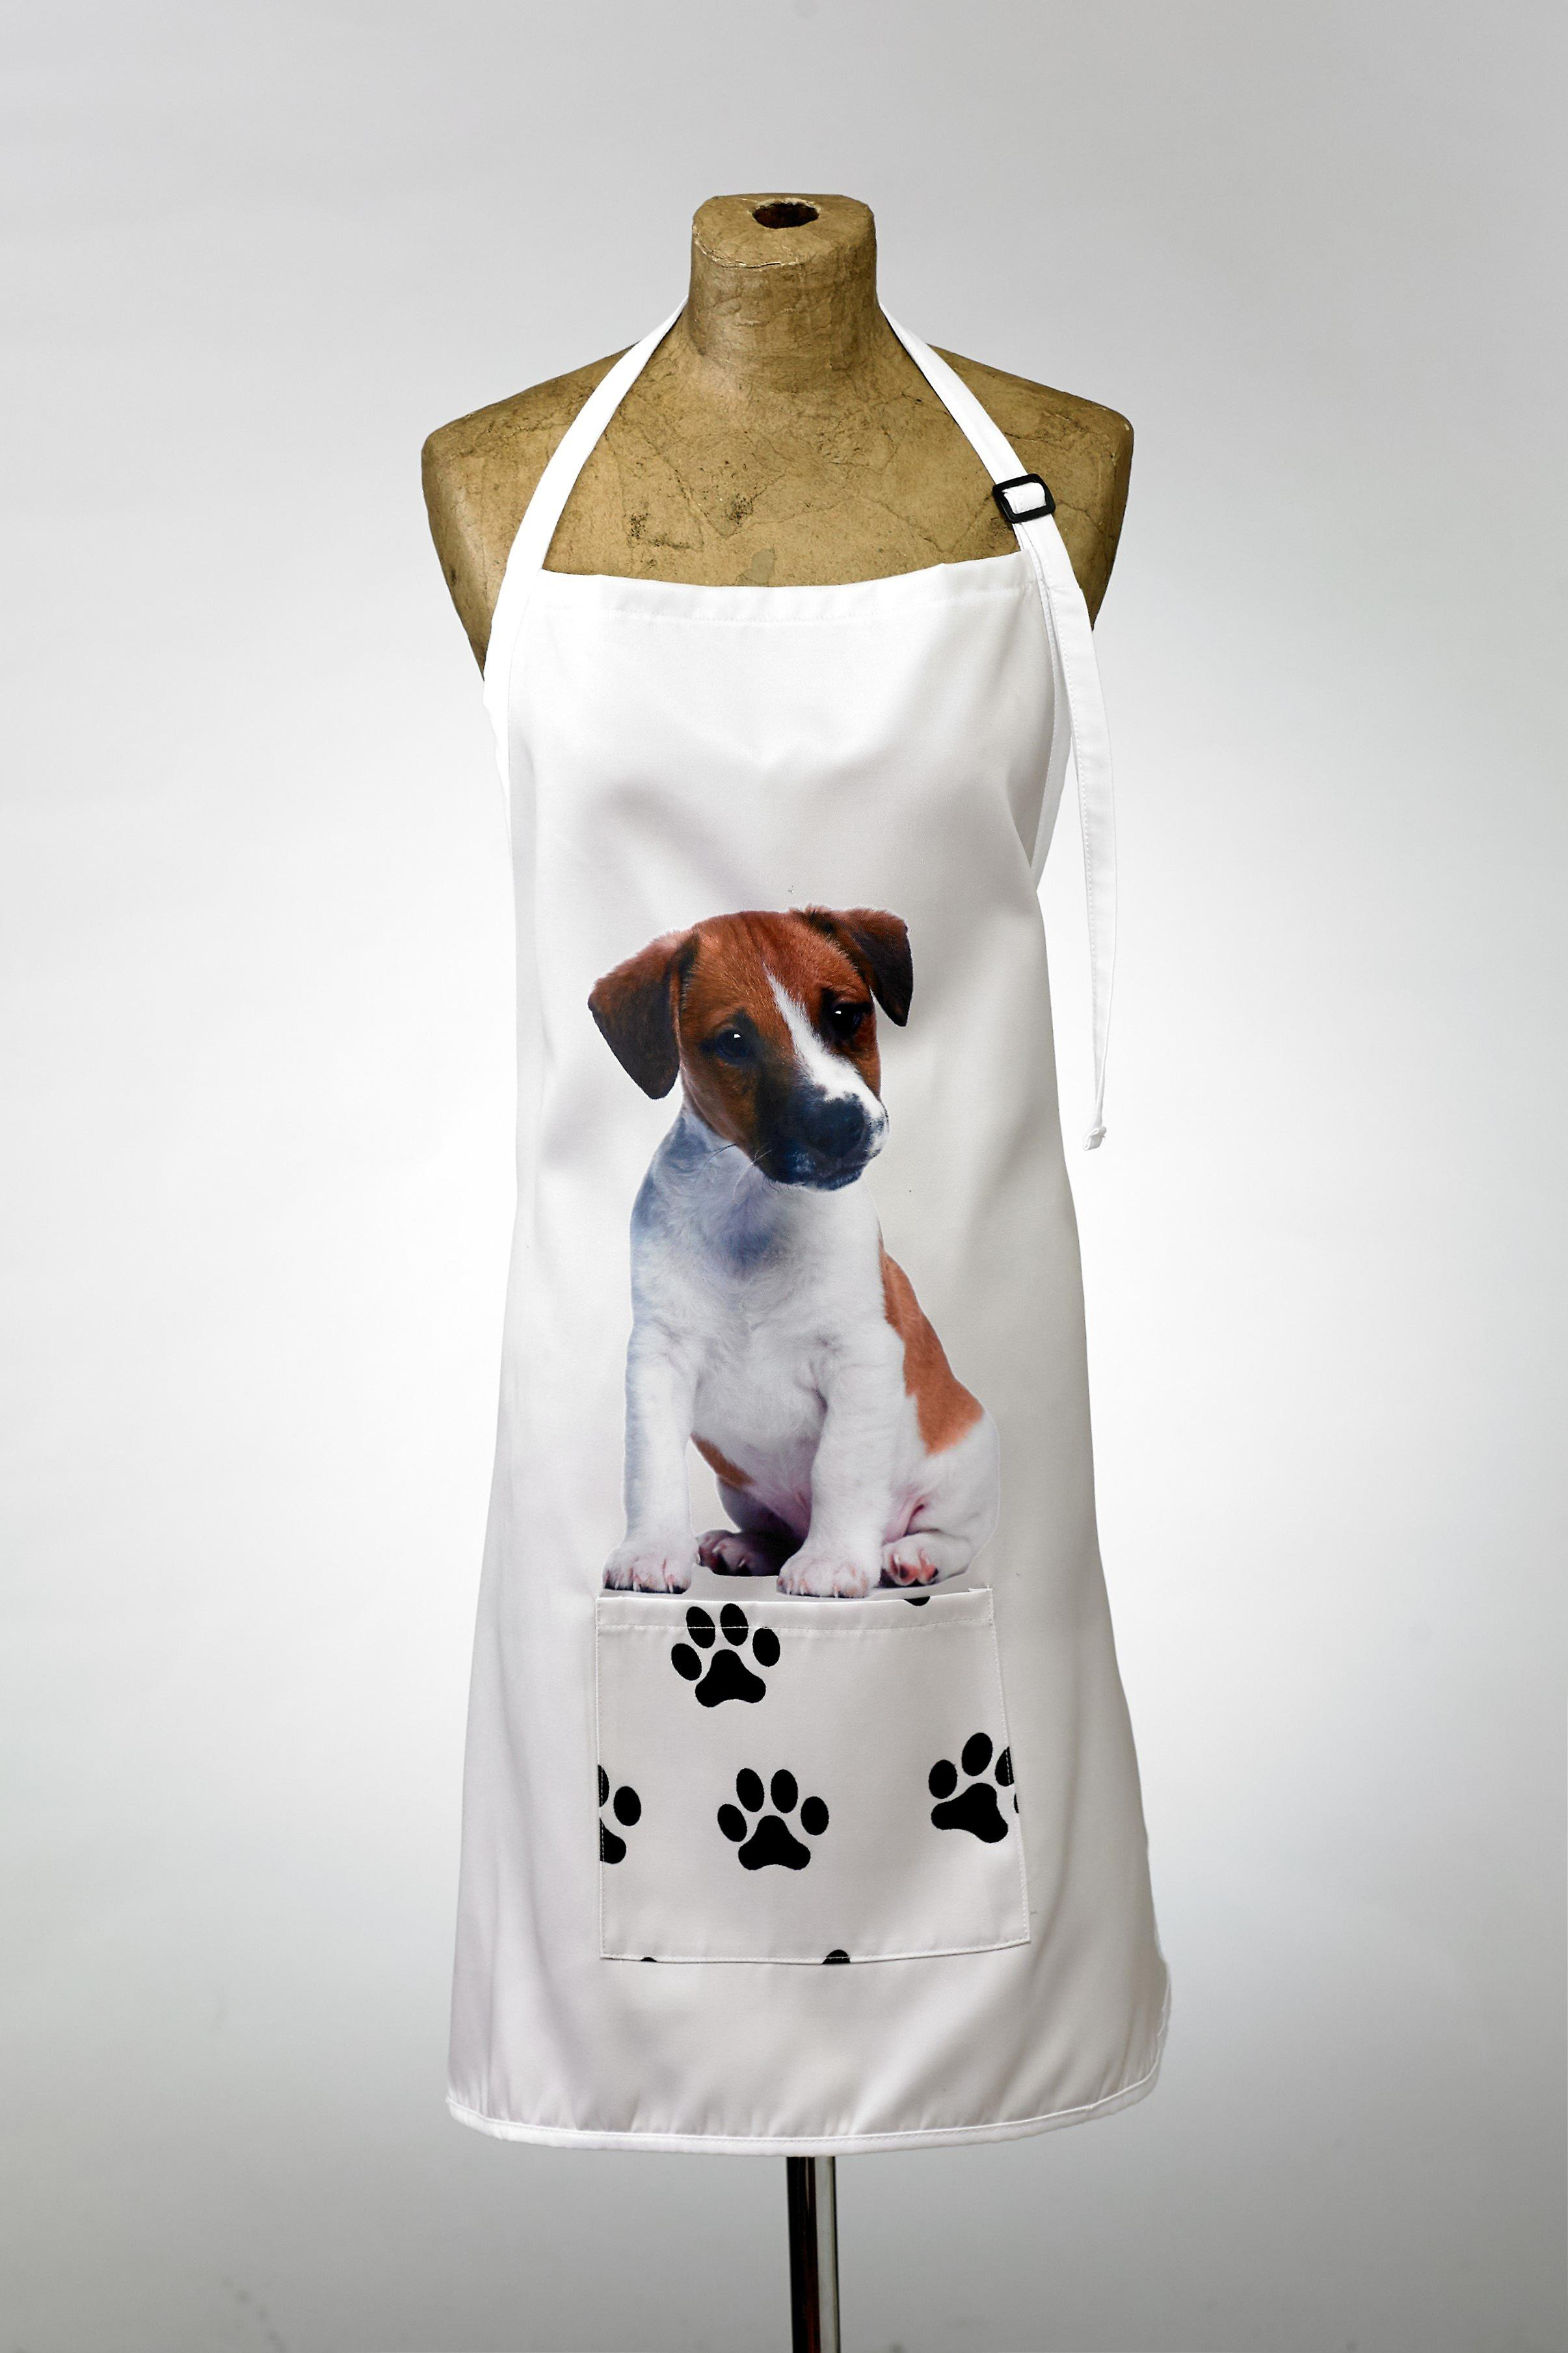 Adorable jack russell design apron